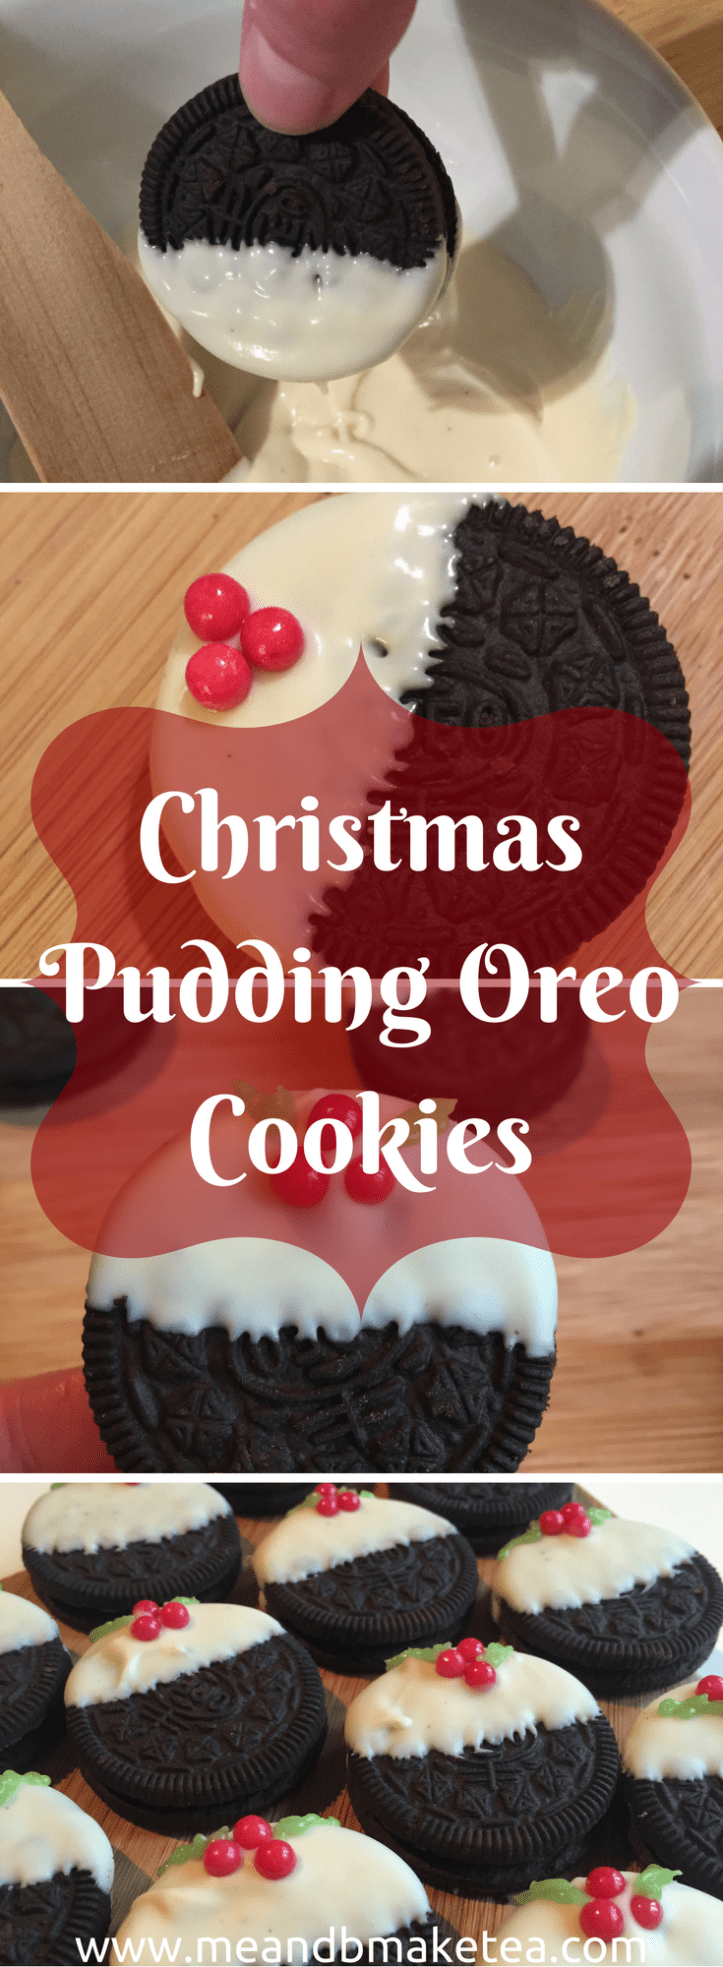 no bake oreo christmas pudding biscuits easy quick recipe review cream white chocolate how to tutorial